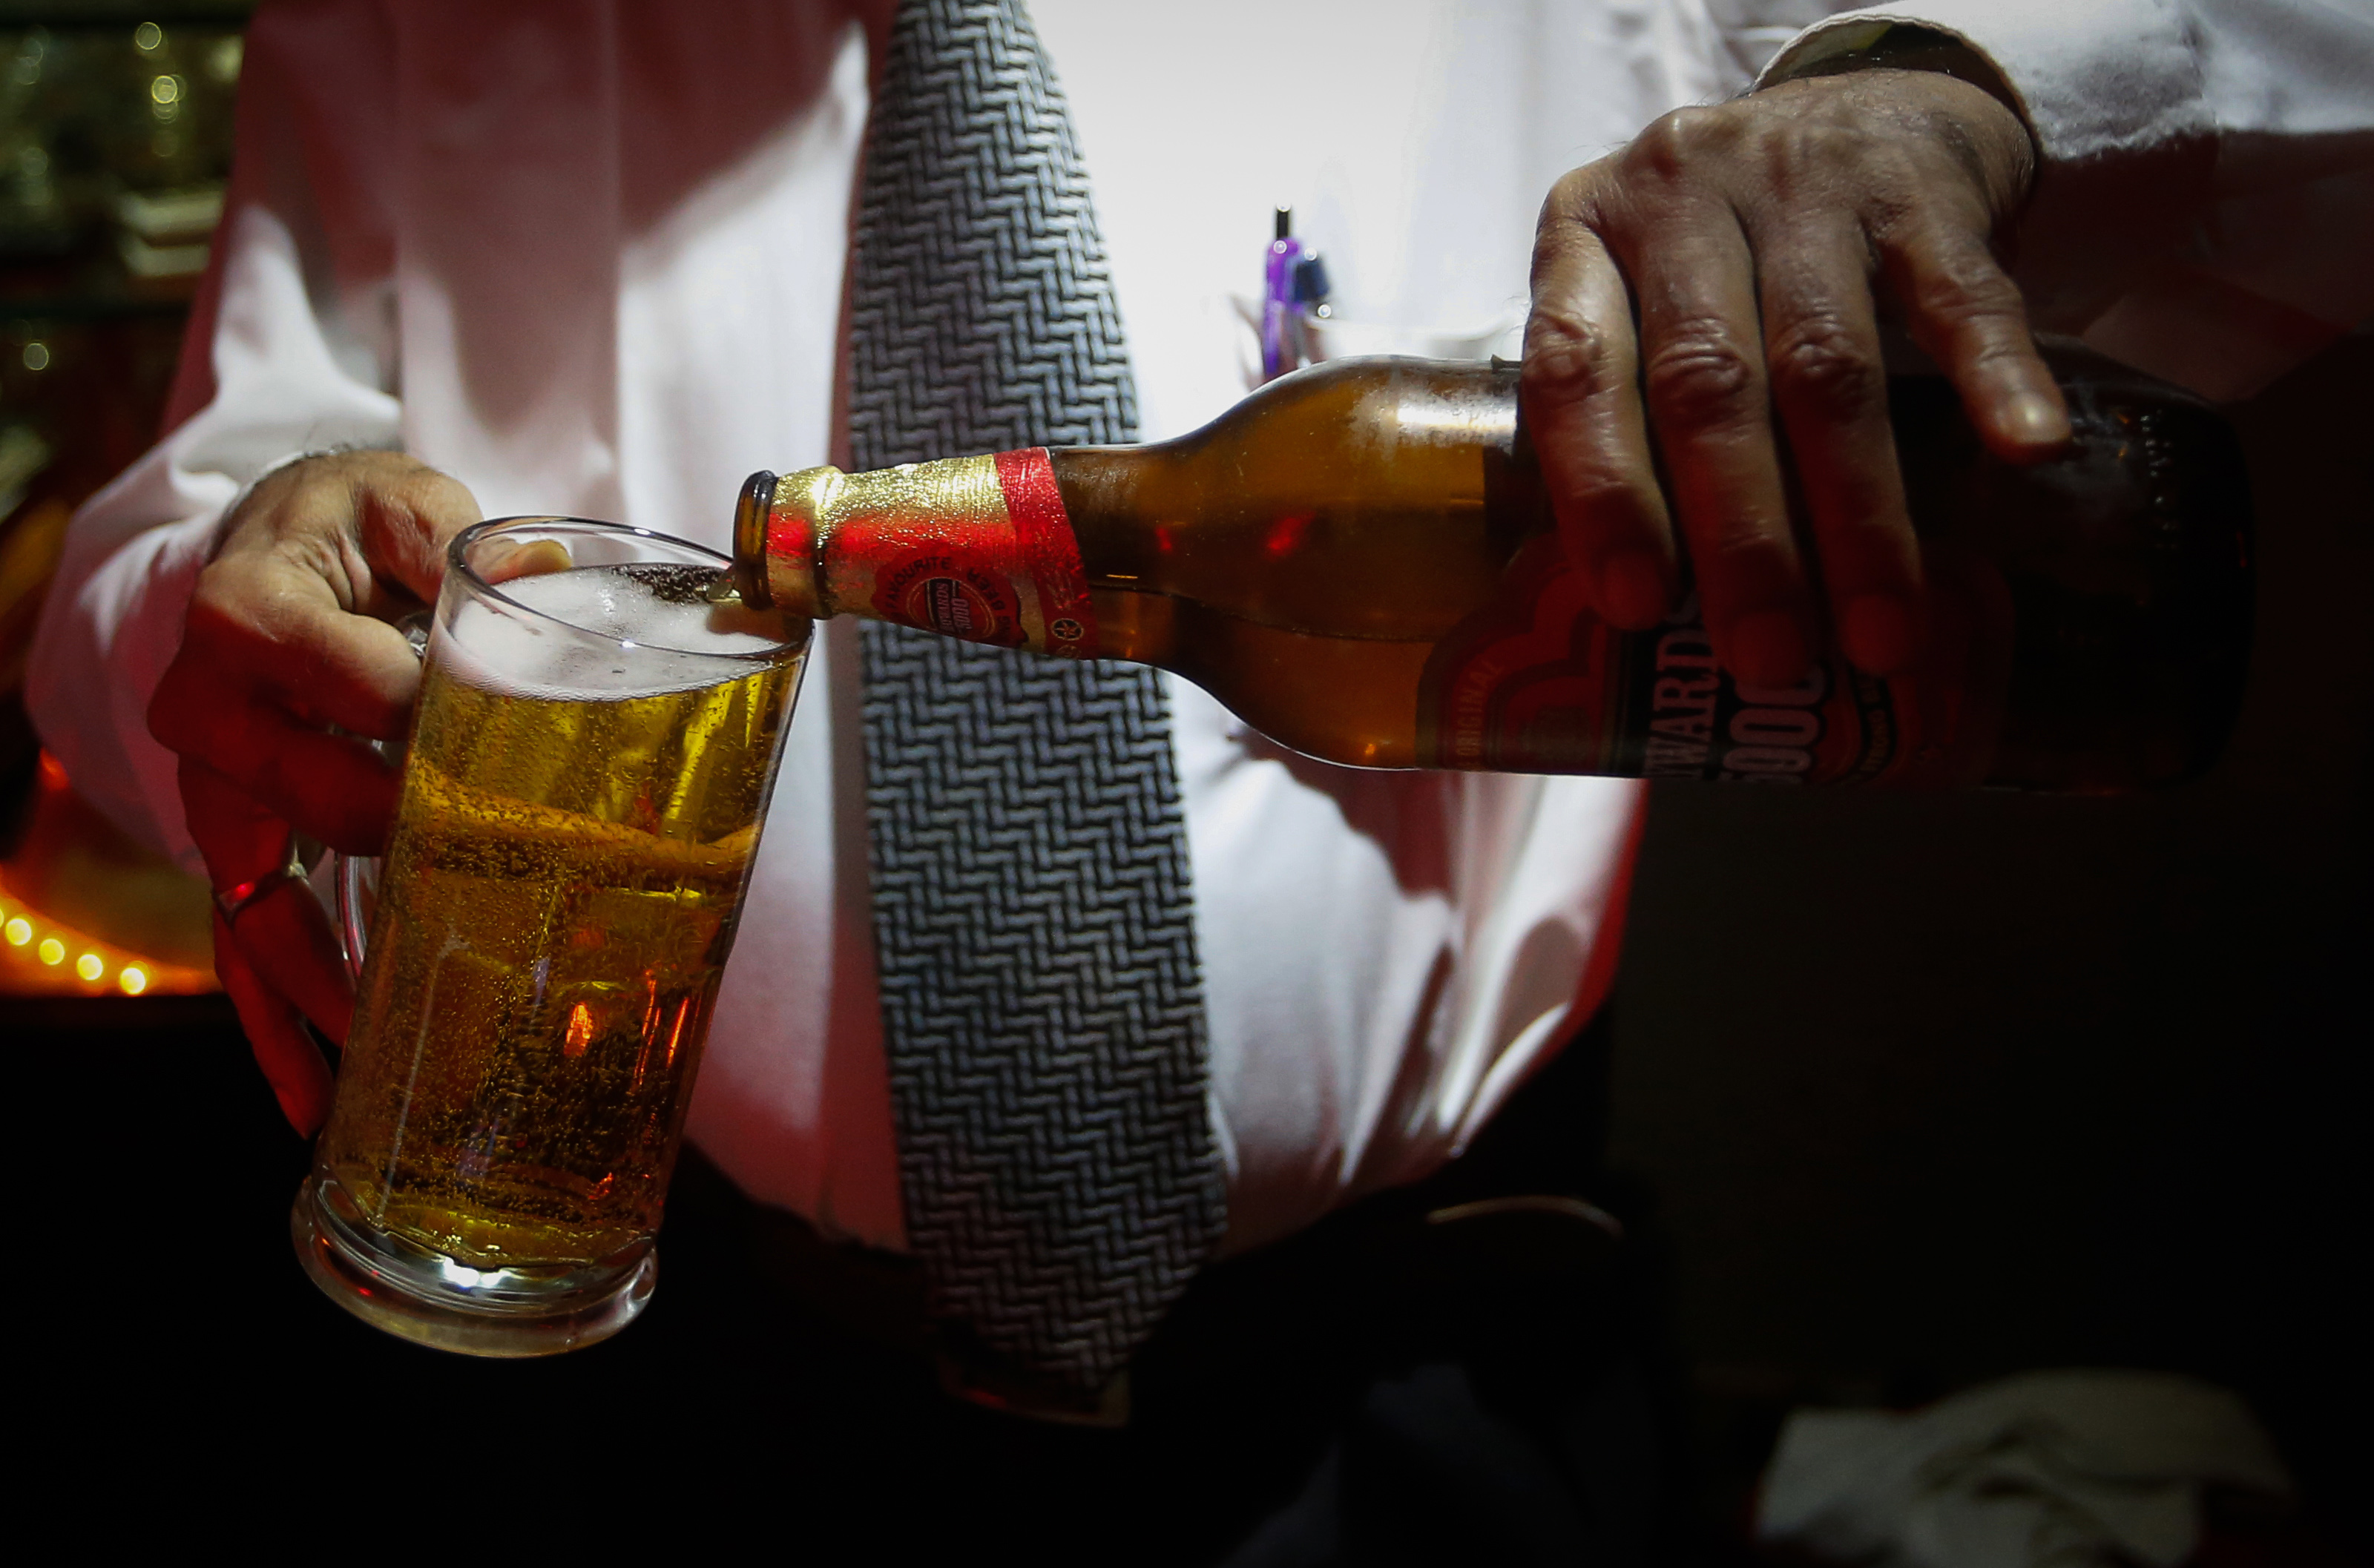 A bartender pours Haywards 5000 strong beer, a product of SABMiller, into a glass at a restaurant in Mumbai August 28, 2013. Strong beer, with alcohol content of 5-8 percent, accounted for 83 percent of all beer sold in India last year, according to research firm Mintel, a figure industry players say is the biggest strong beer share of any major market. Brewers expect that to grow to 90 percent over the next three to five years. Picture taken August 28, 2013. To match INDIA-BEER/ REUTERS/Danish Siddiqui (INDIA - Tags: SOCIETY FOOD) - RTX13XH6